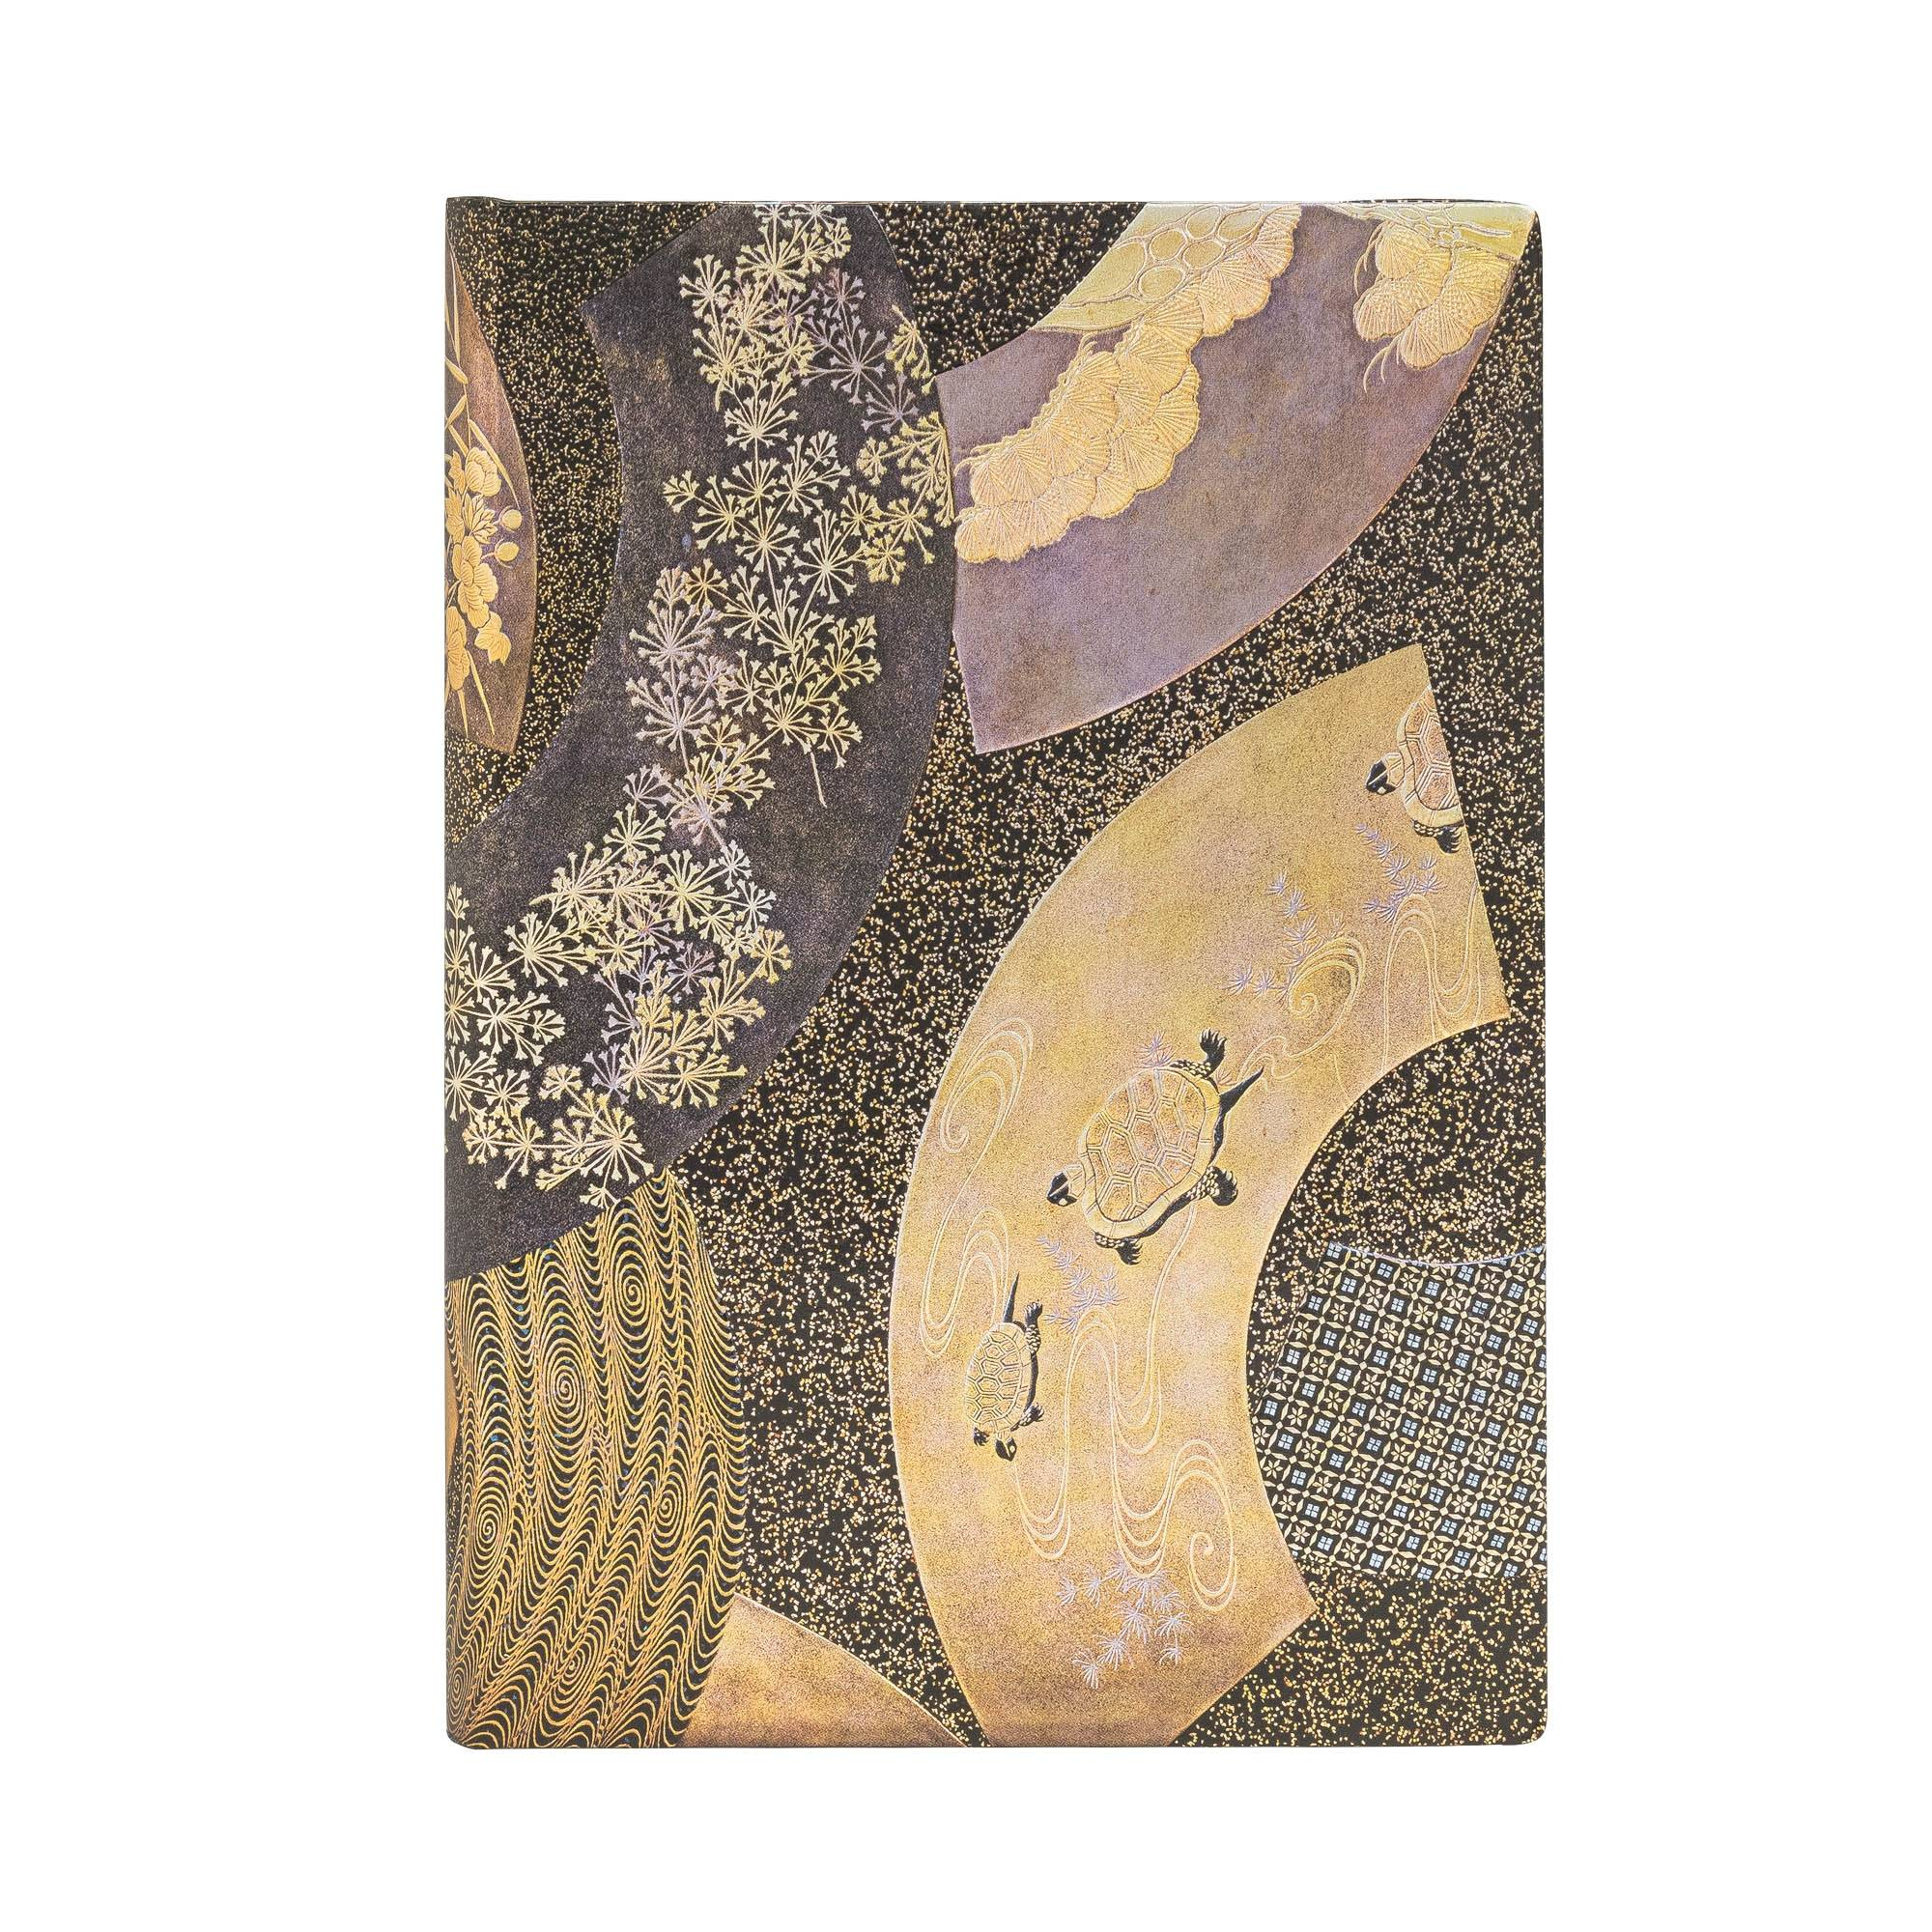 Paperblanks Japanese Ougi 5 x 7 Inch Midi Journal